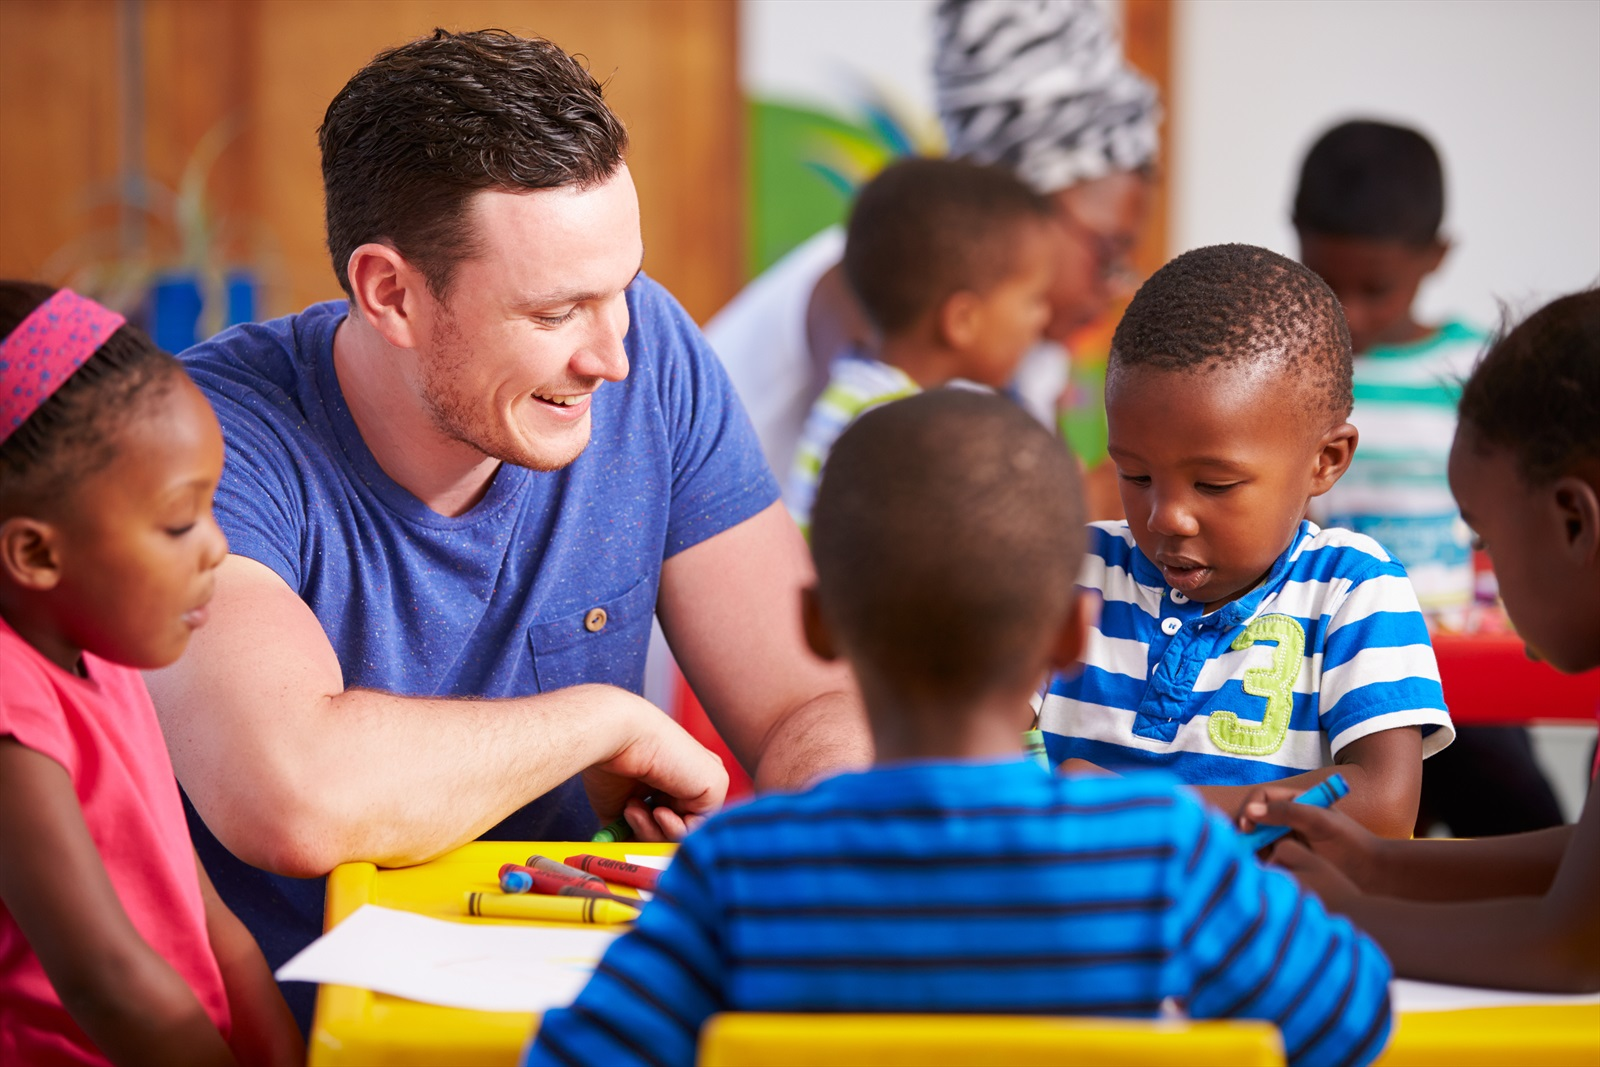 Getting men into Early Learning and Childcare